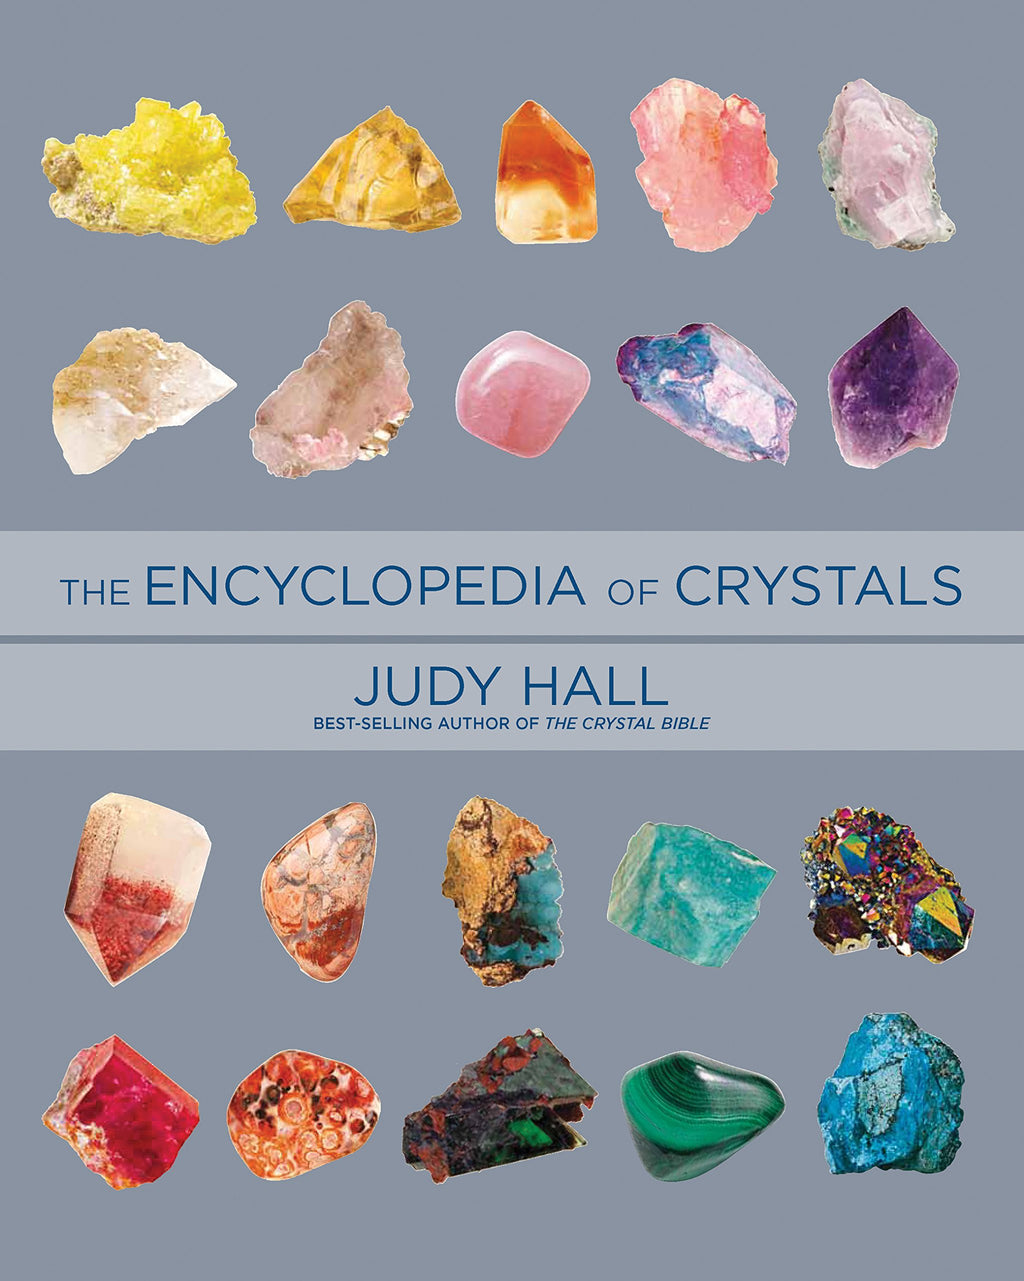 Encyclopedia of Crystals by Judy Hall